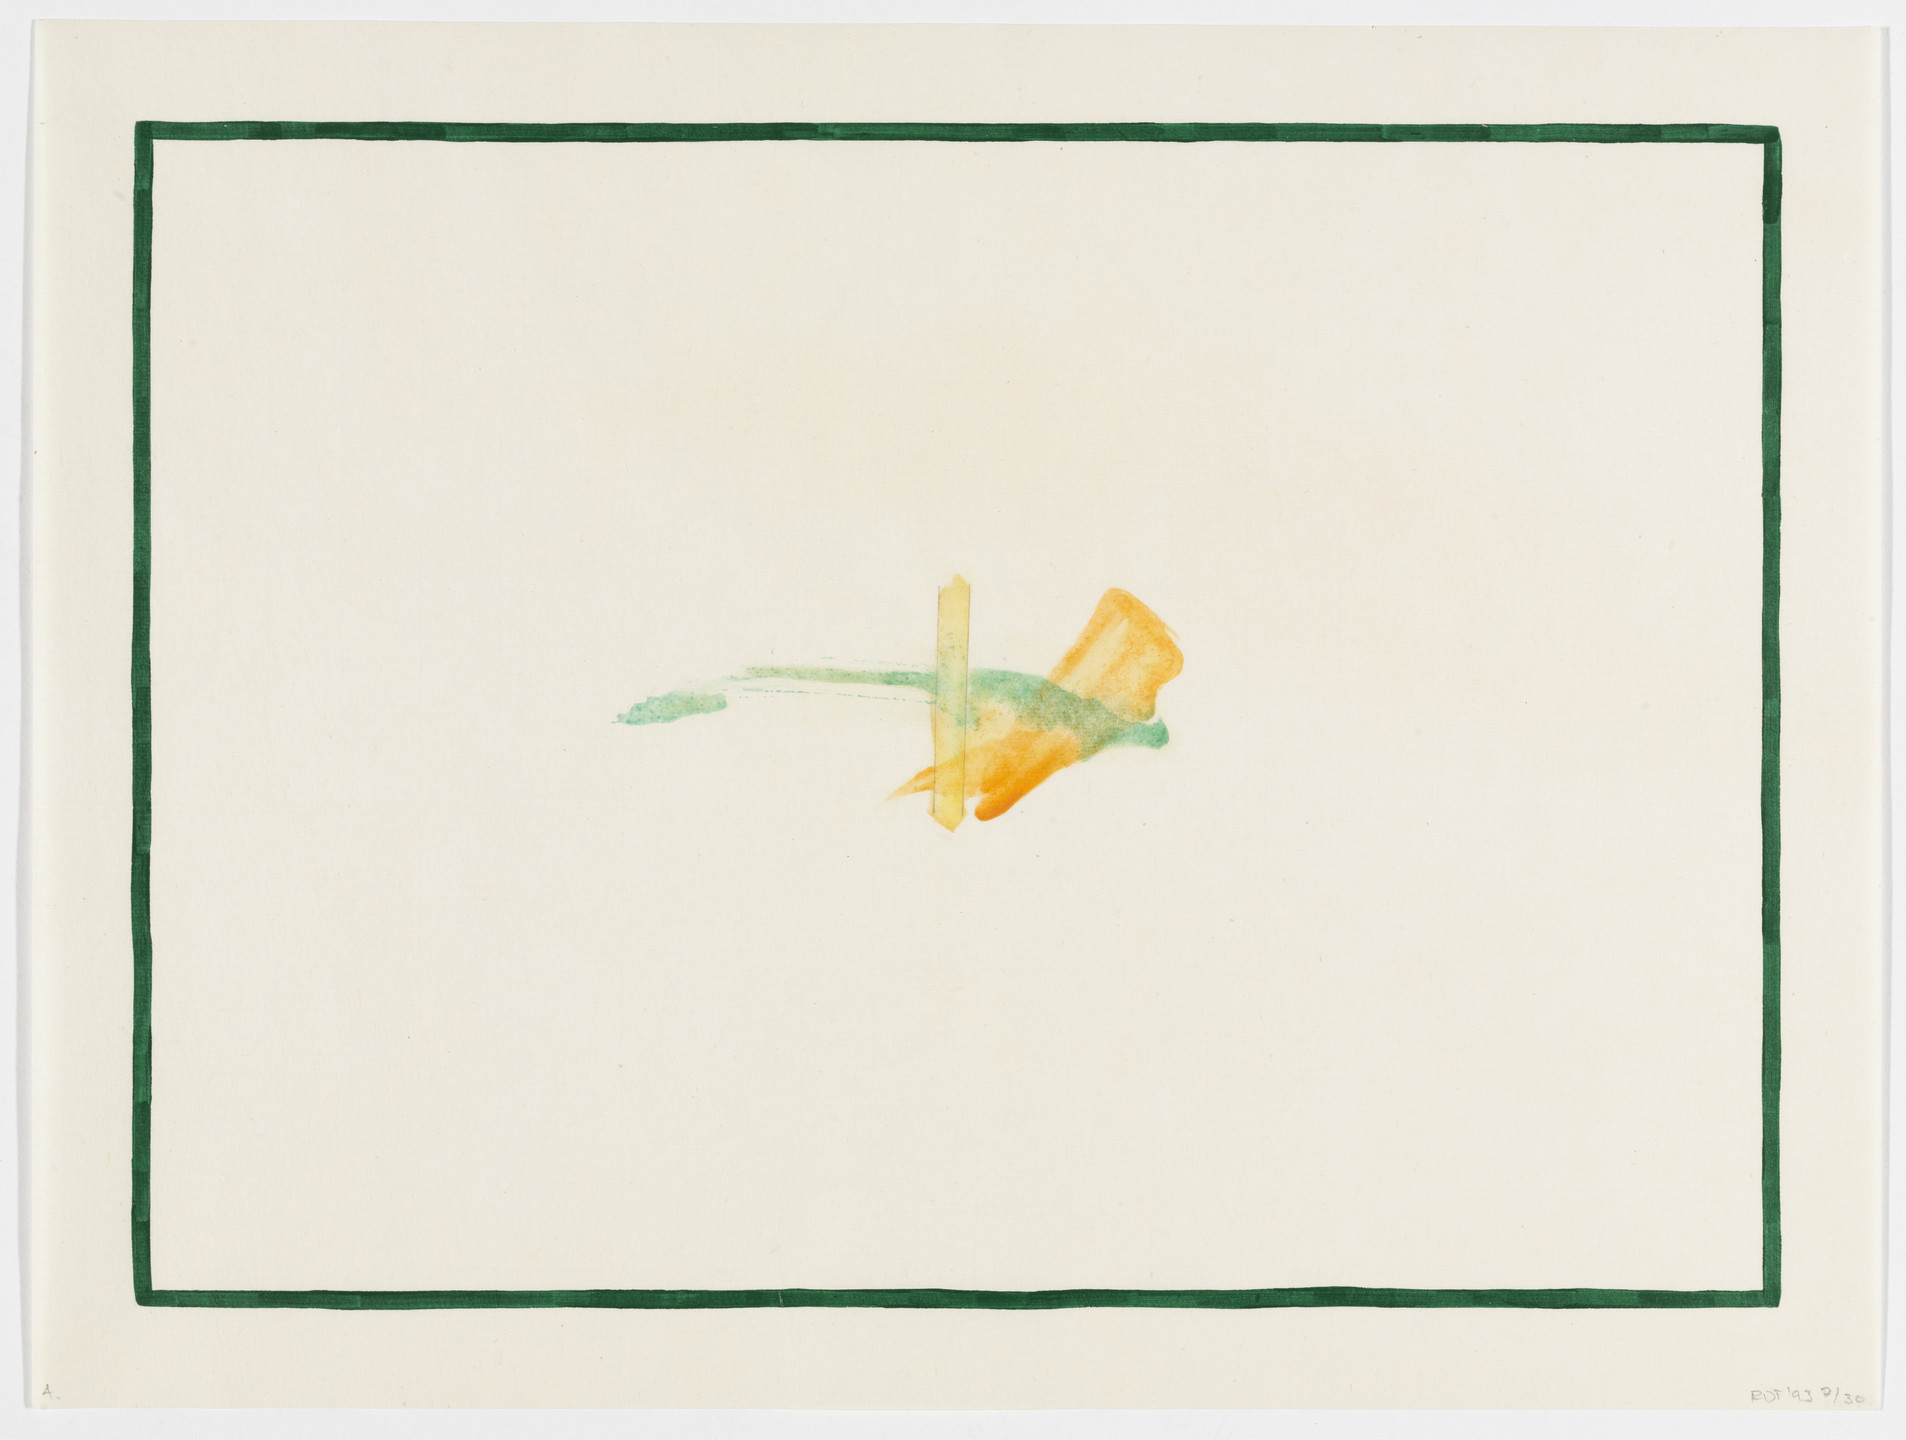 Richard Tuttle. Untitled from Galisteo Paintings. 1993